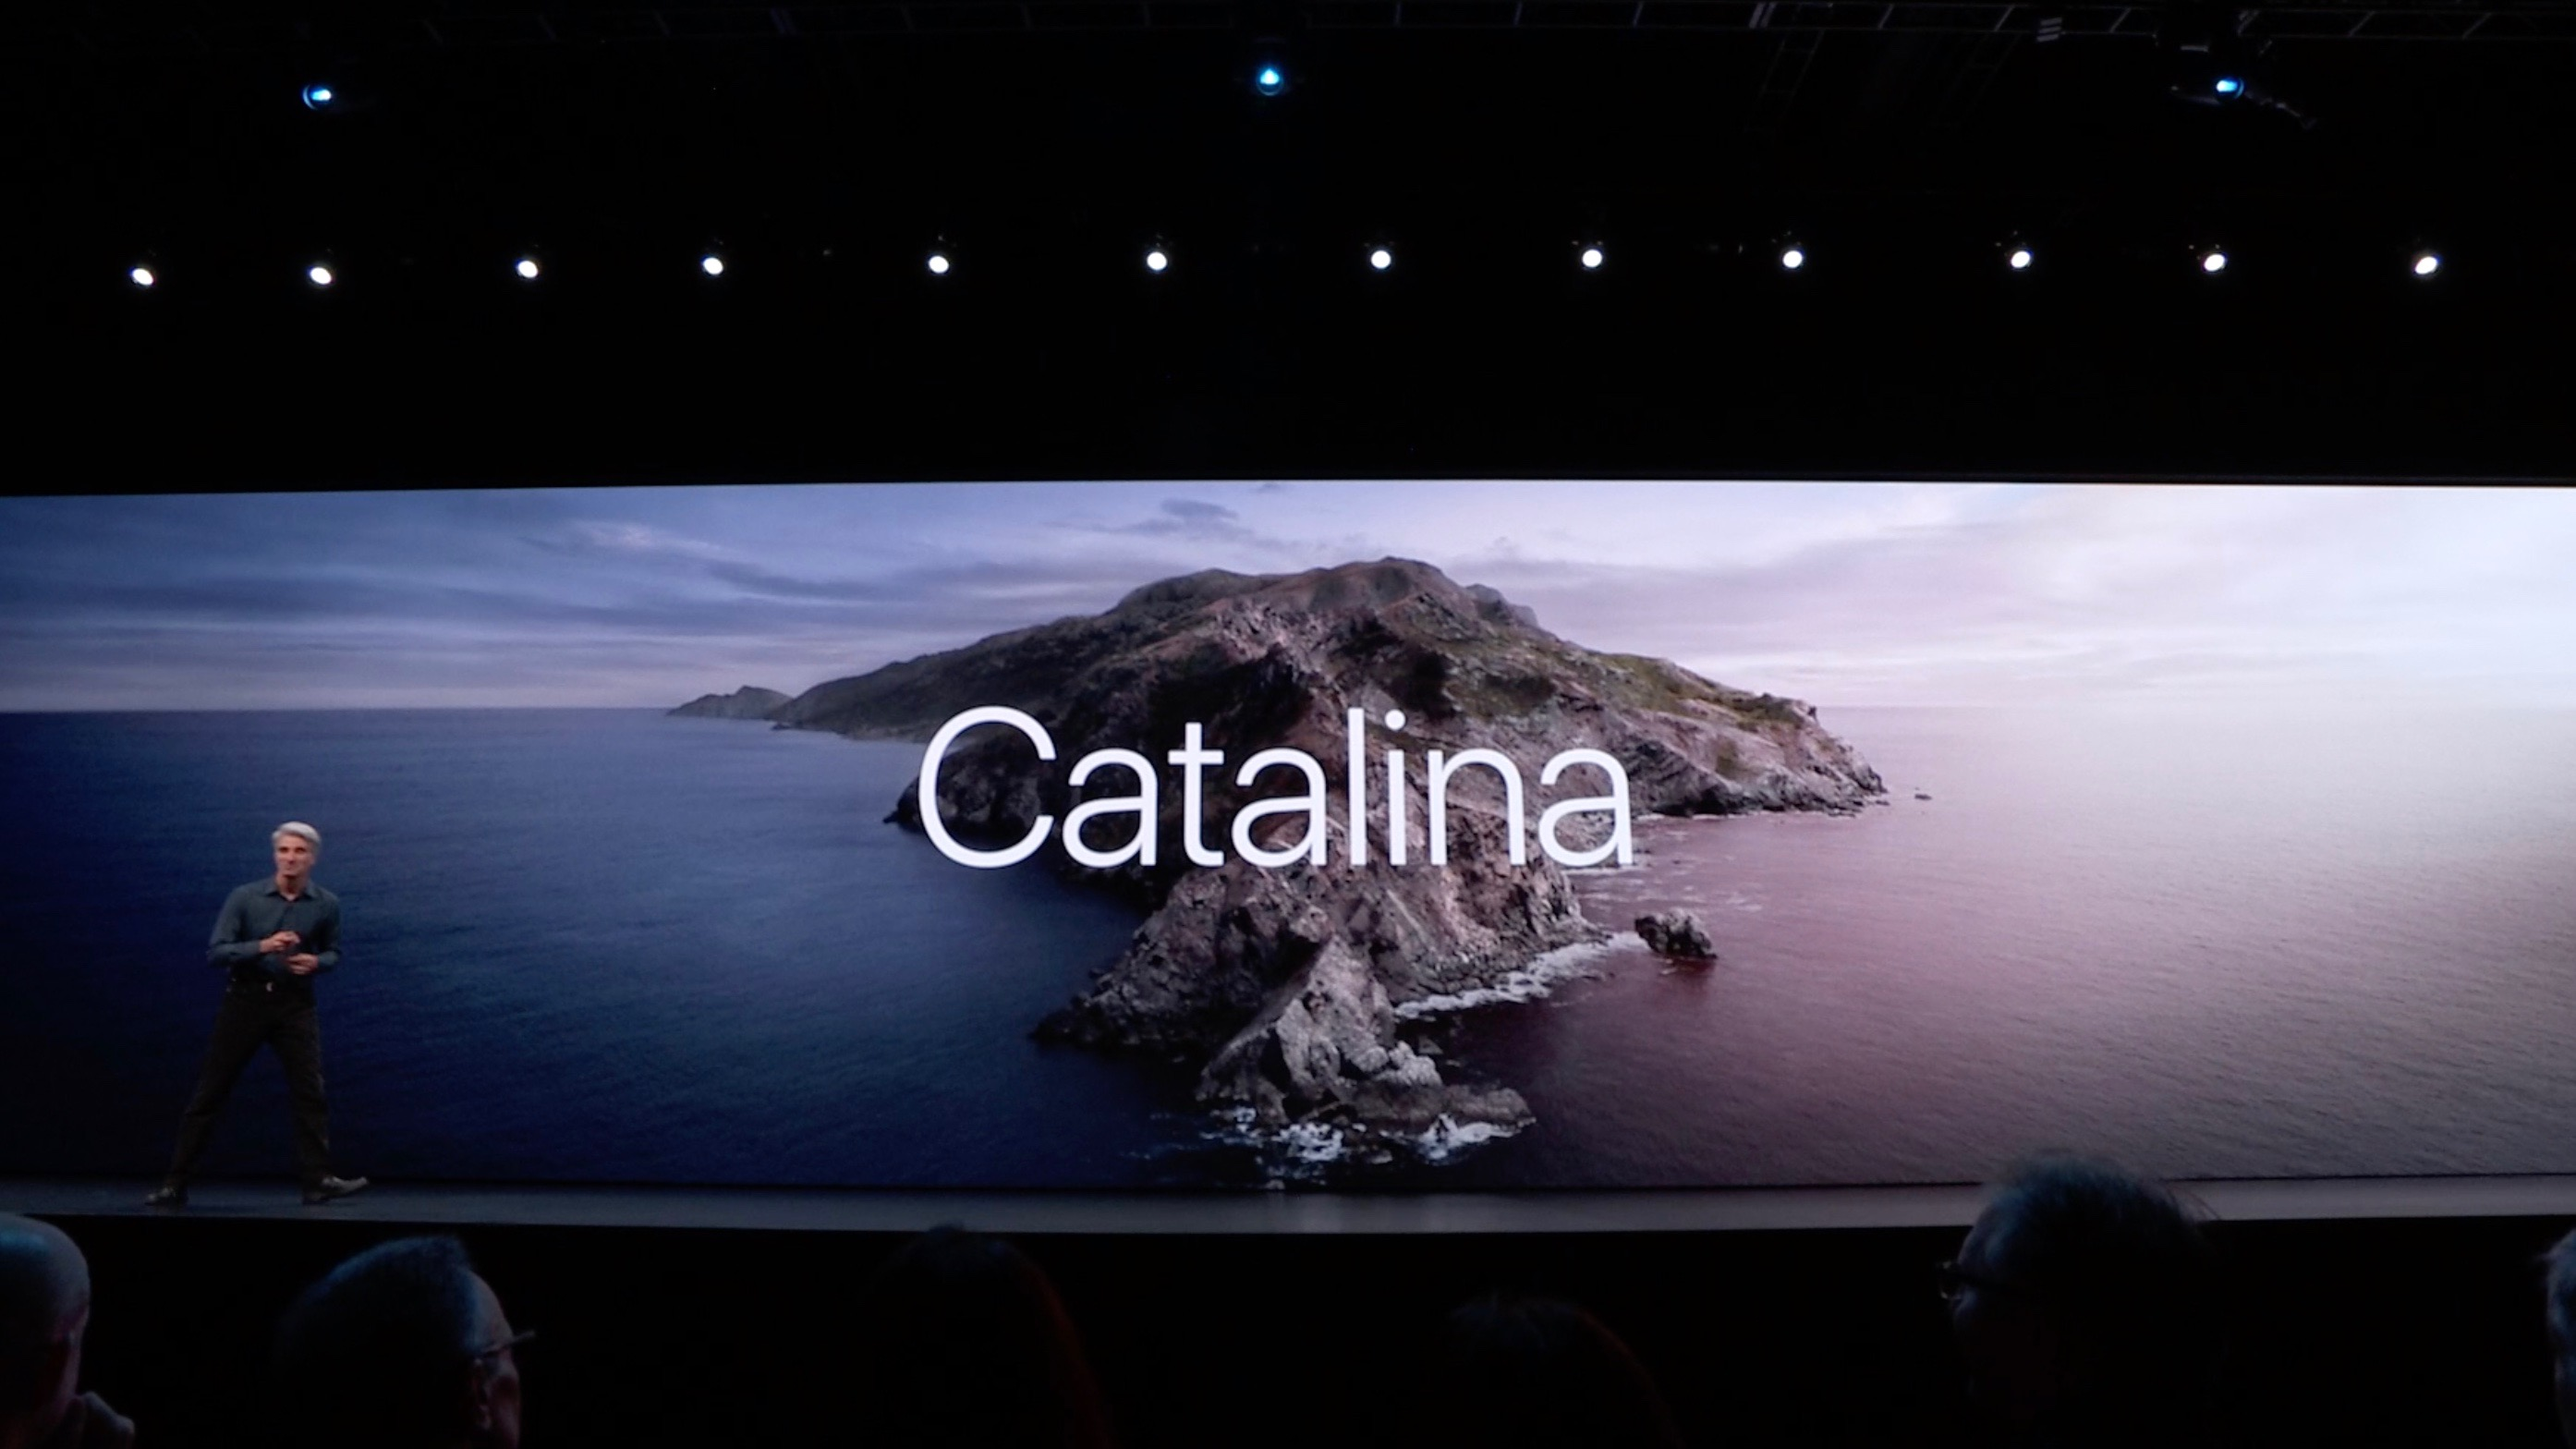 Download The New Macos Catalina Wallpaper Here 9to5mac